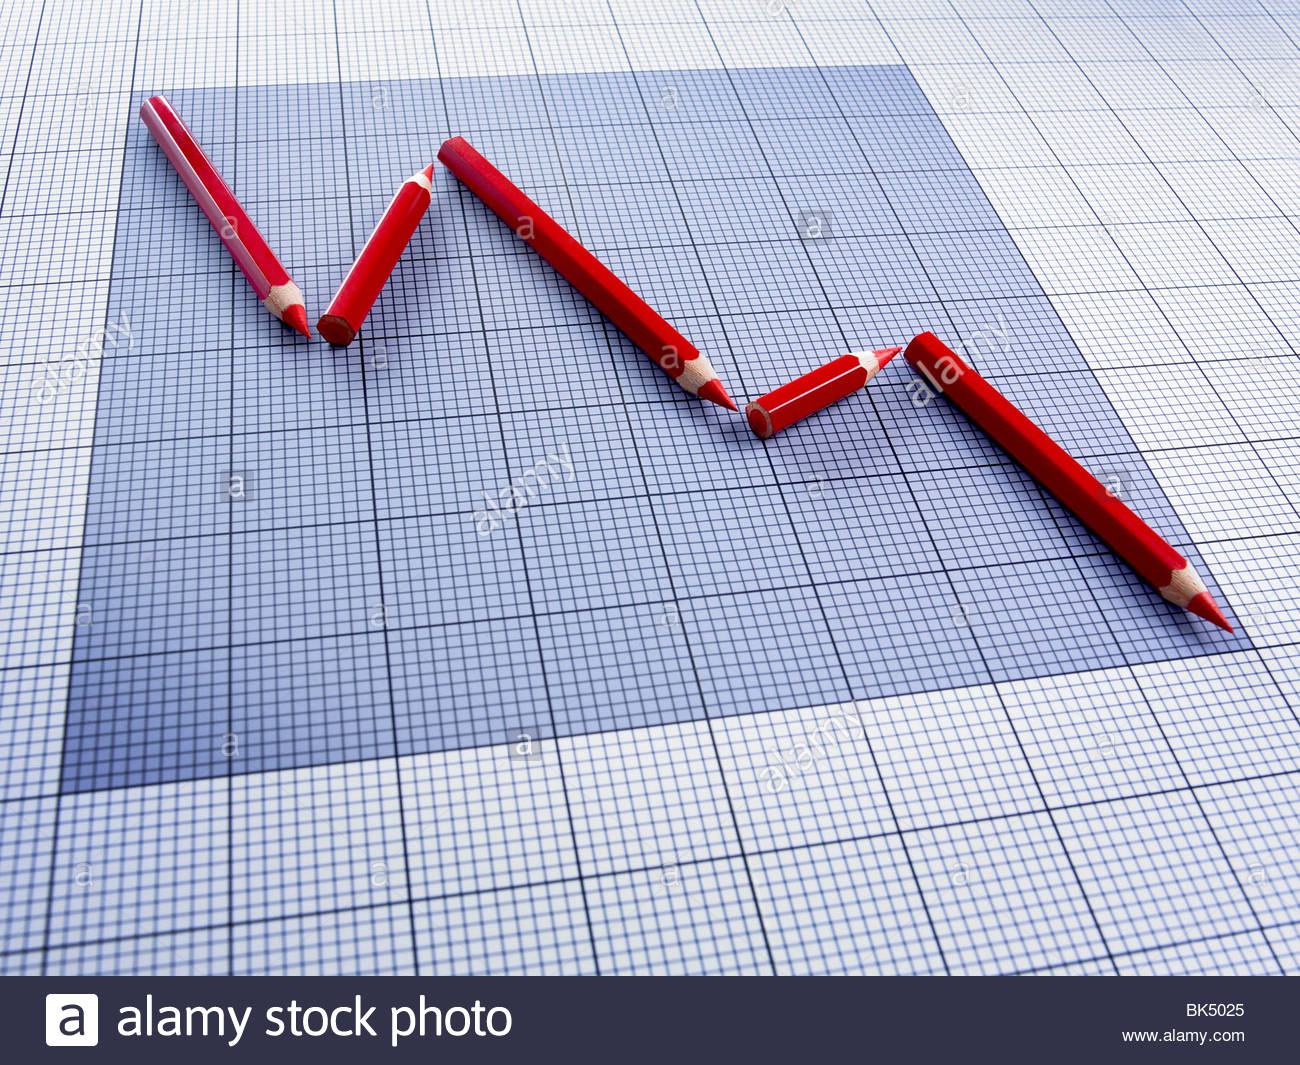 Red pencils forming declining graph - Stock Image